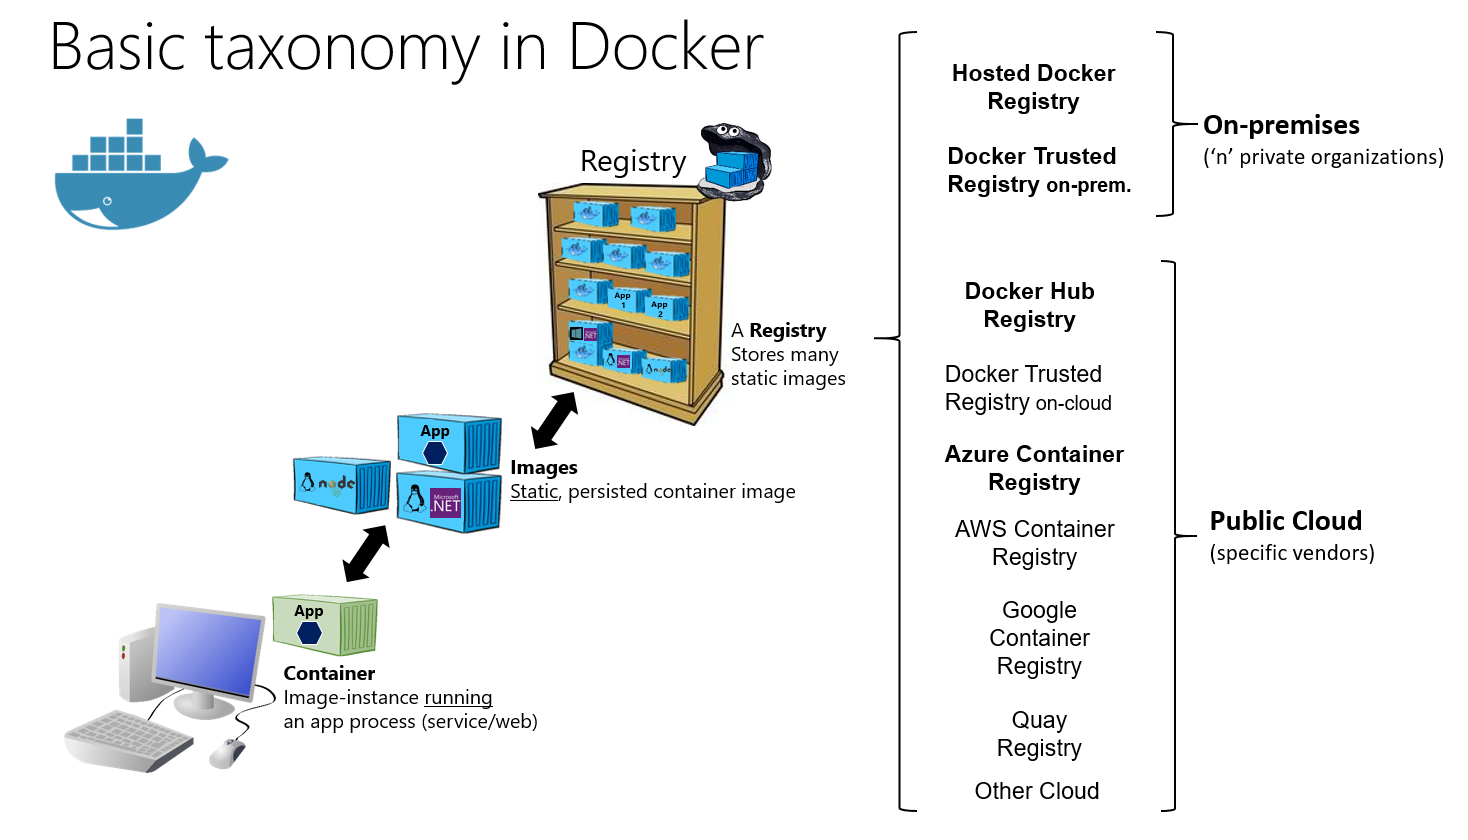 Basic Taxonomy in Docker